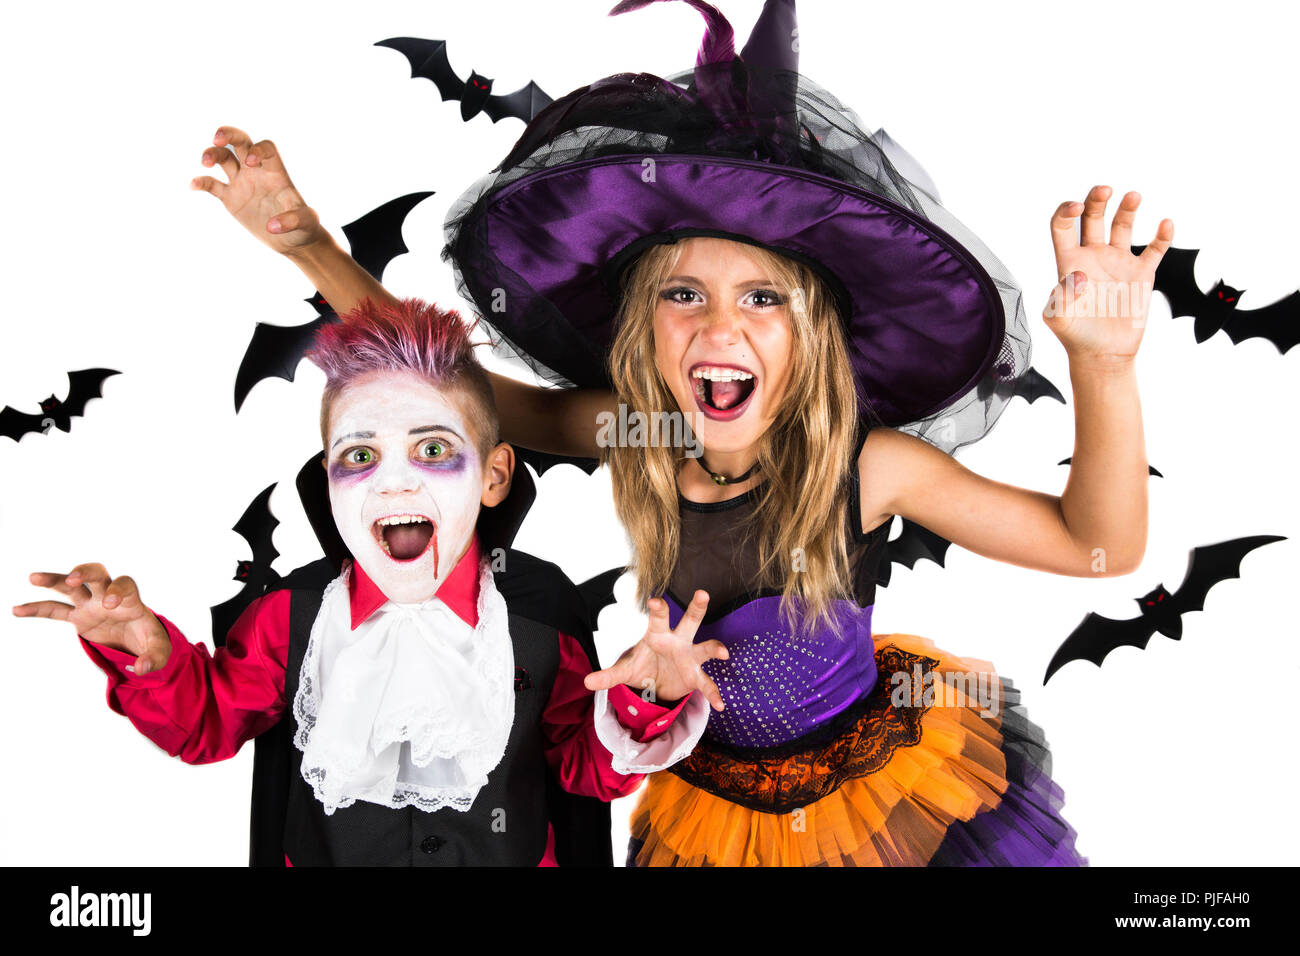 scary halloween costumes for kids stock photos & scary halloween